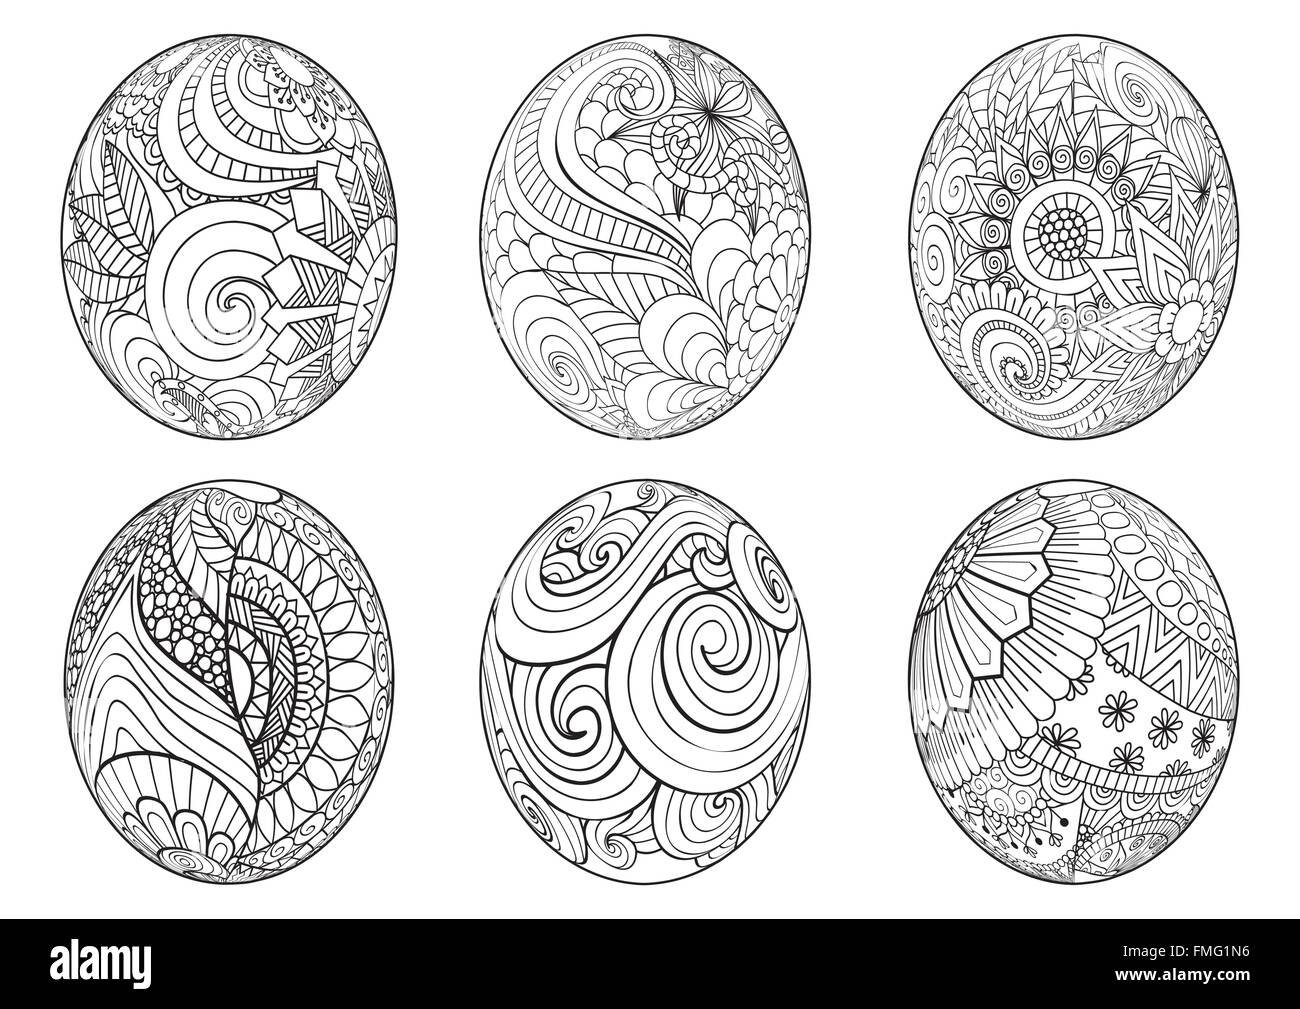 Zentangle Easter Eggs For Coloring Book Adult